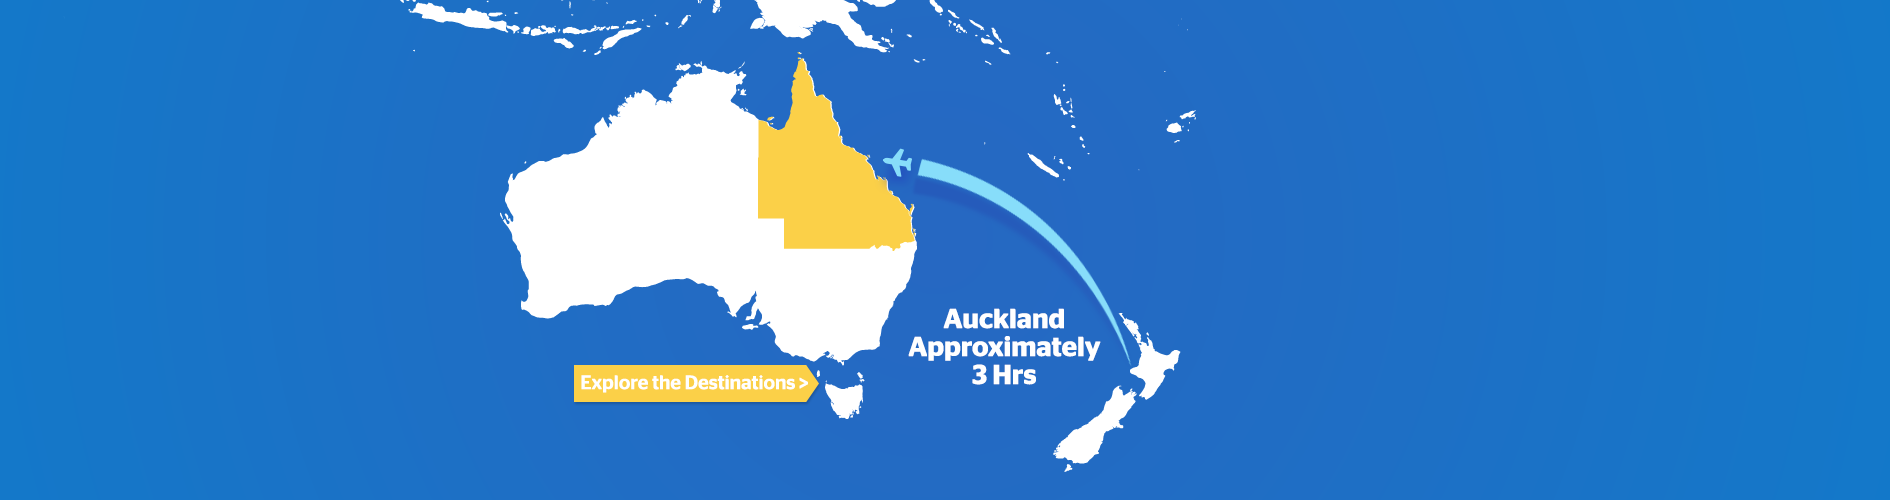 NZ to Australia Flight times map